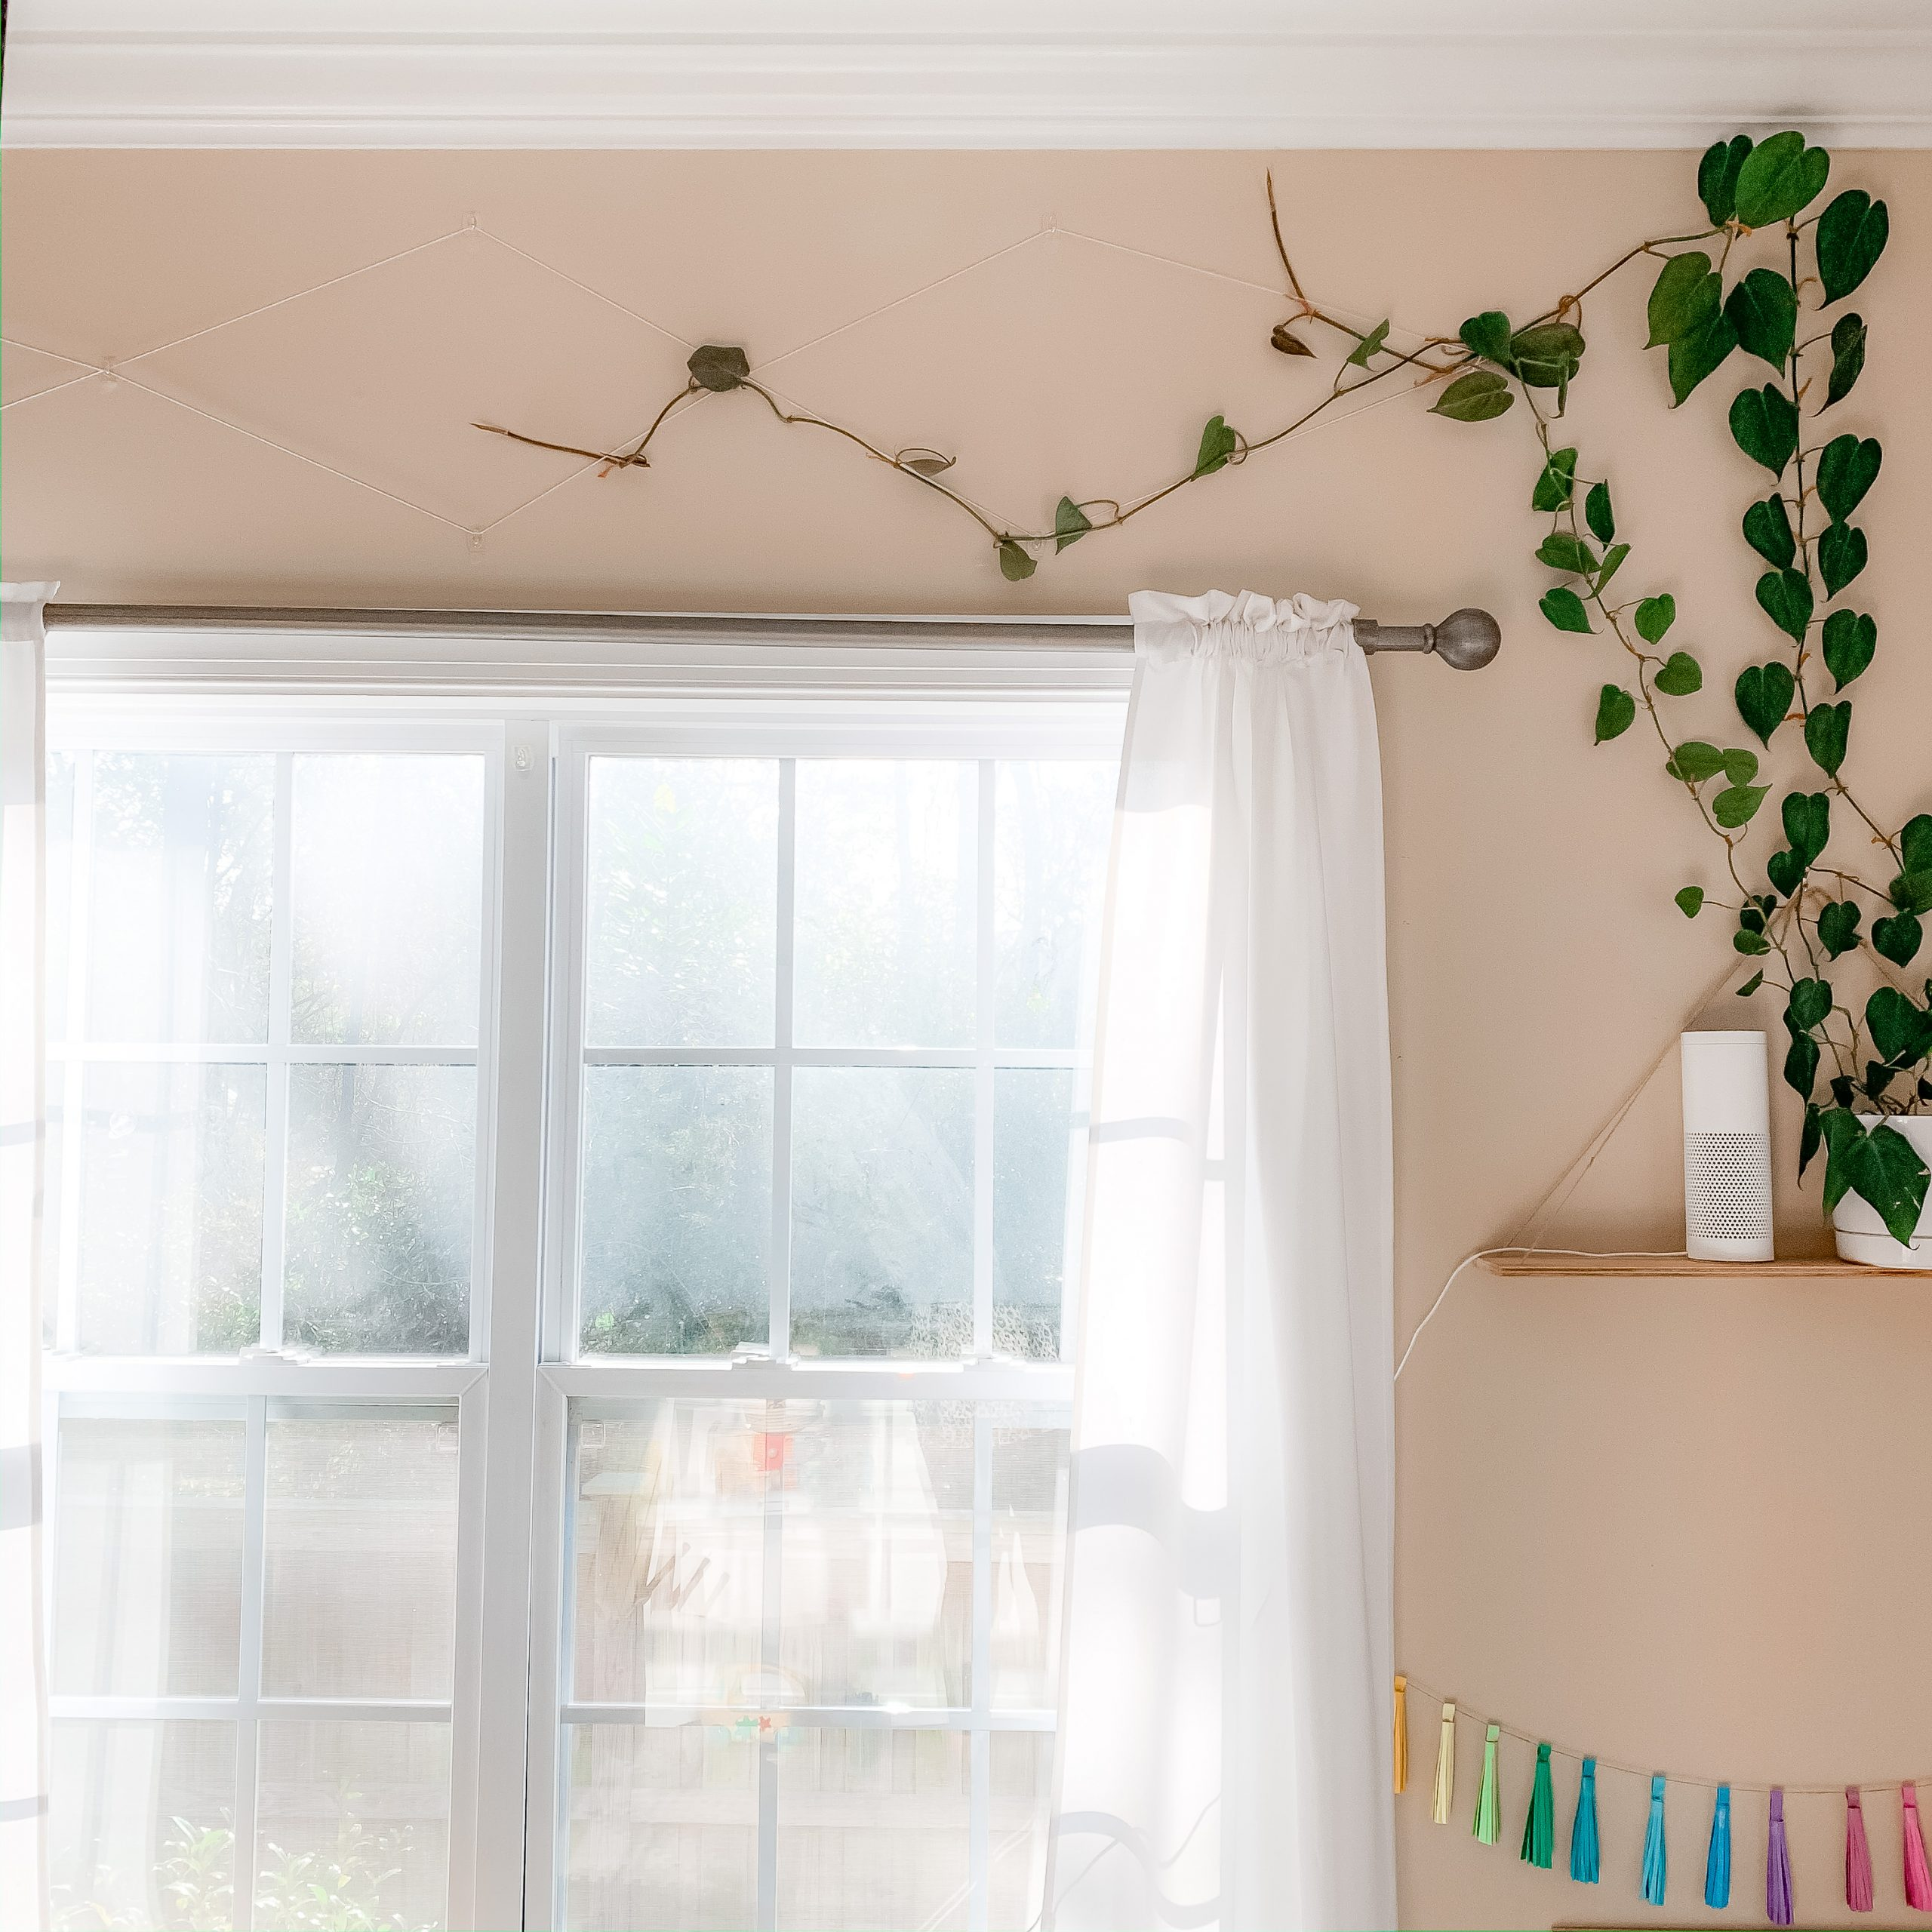 DIY Indoor Plant Trellis | Care for Your Indoor Vine Plant